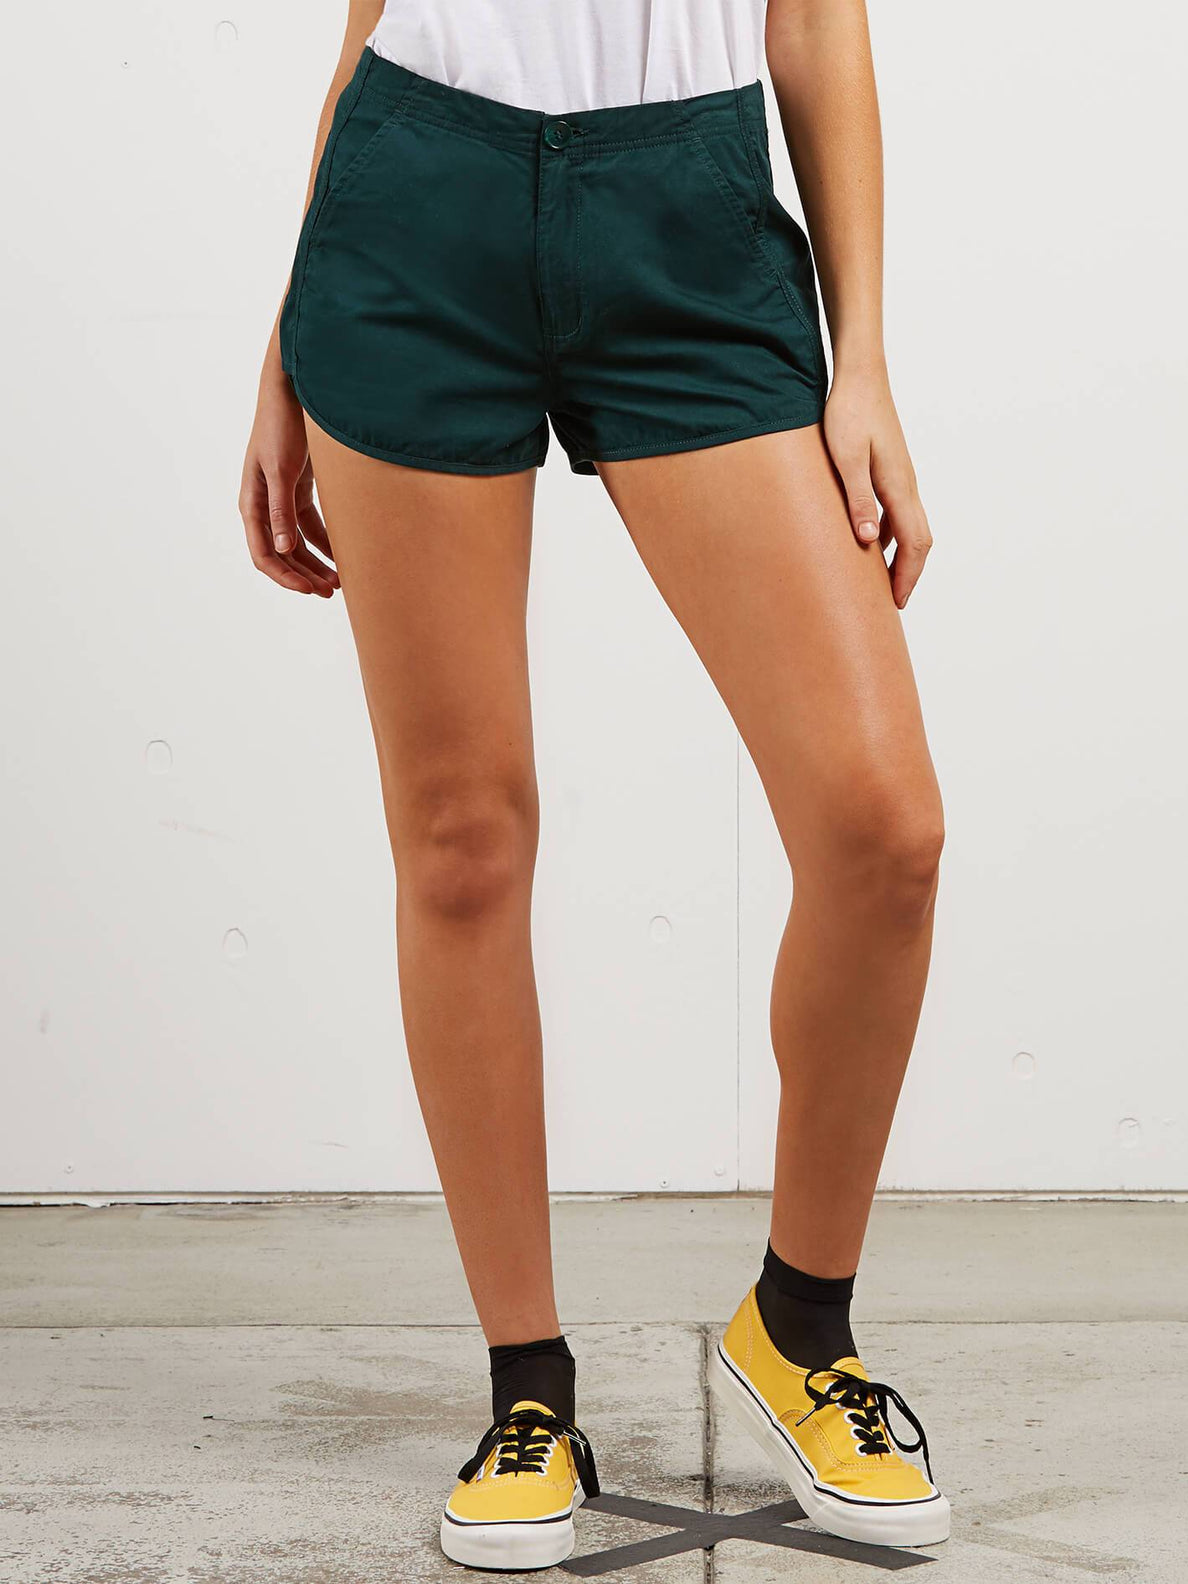 Stoney Shorts In Evergreen, Front View